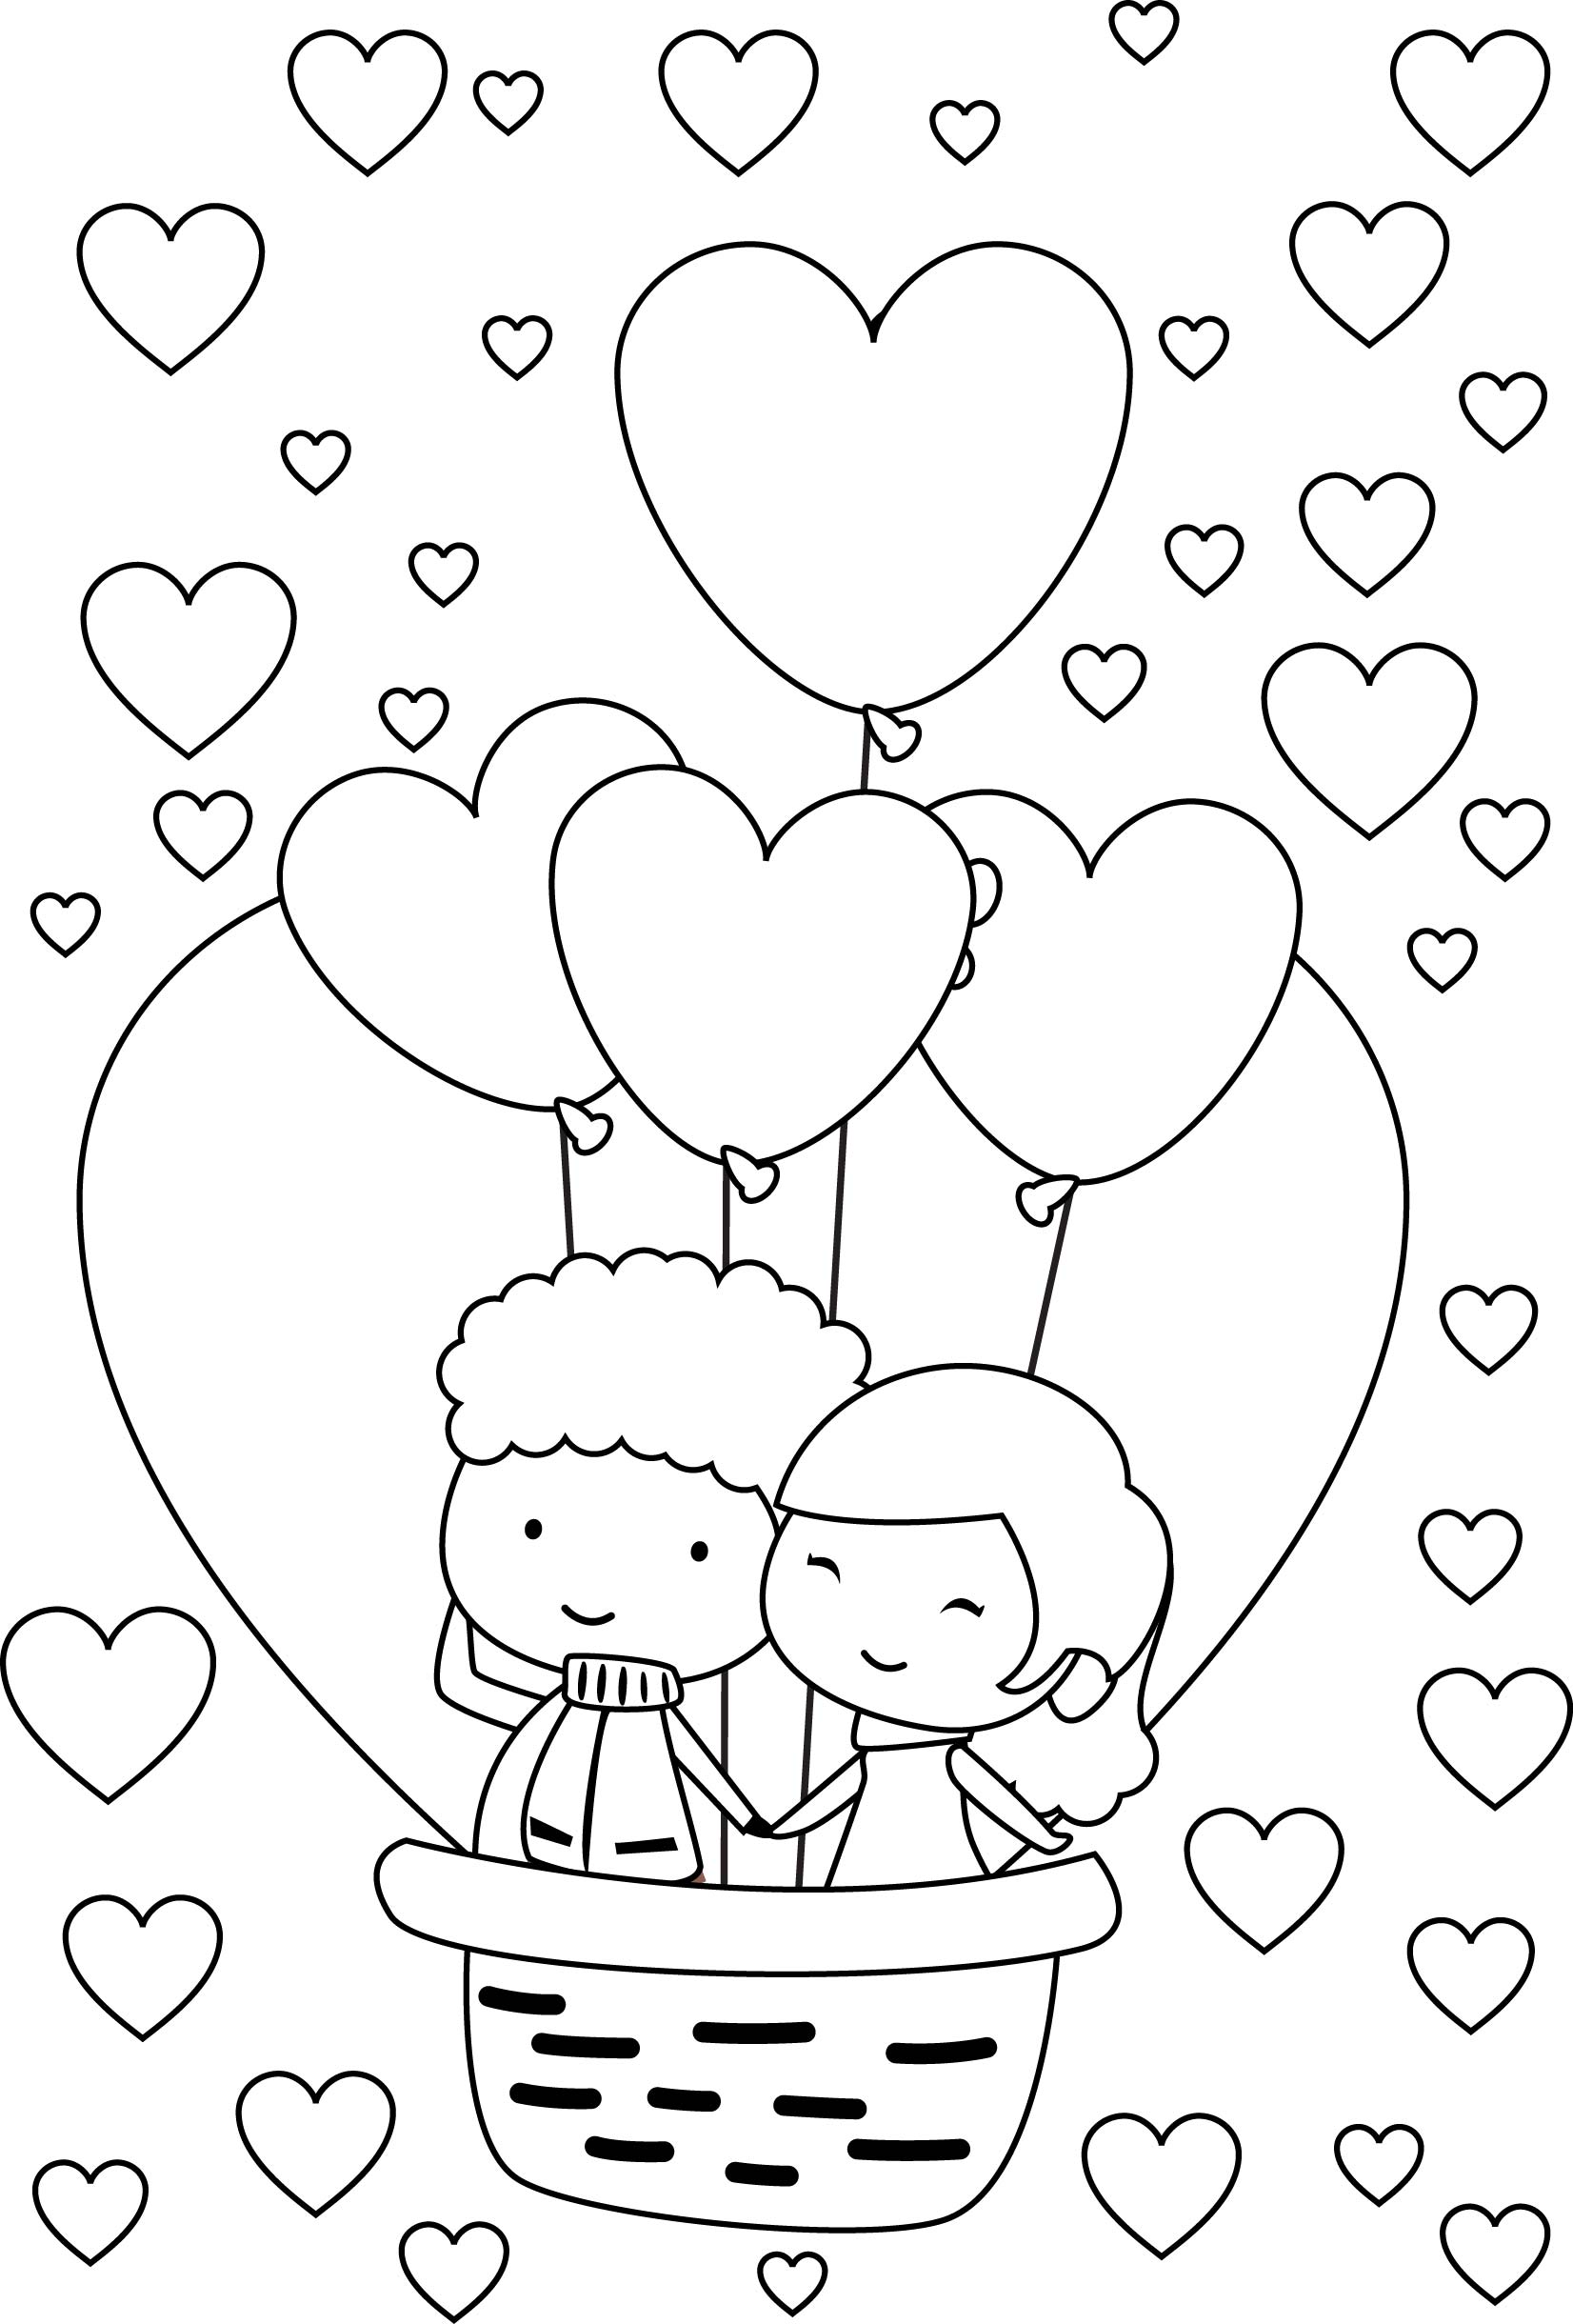 coloring picture love i love you hearts coloring page free printable coloring love picture coloring